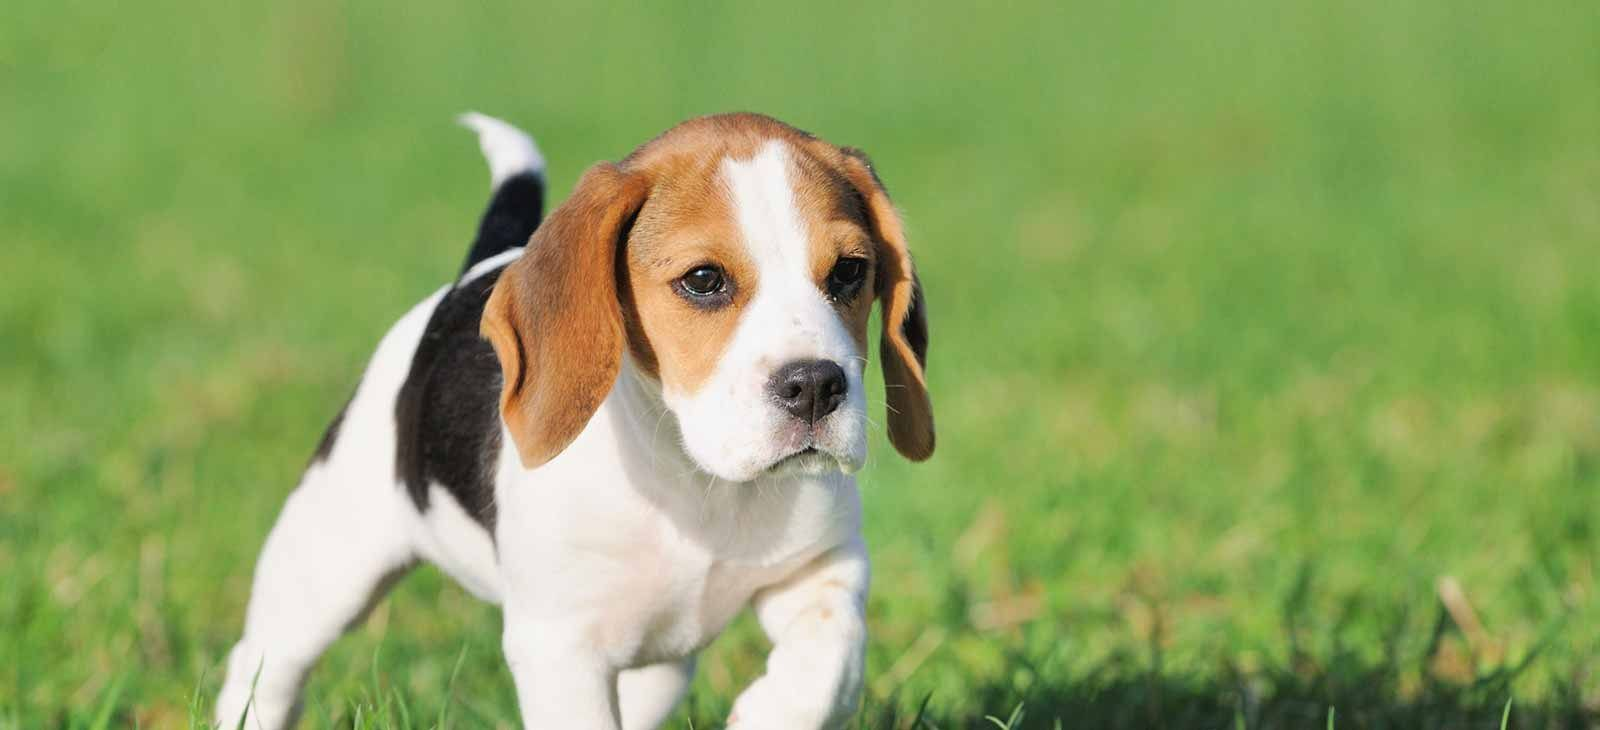 Puppies For Sale In Pa Find Your Perfect Puppy At Greenfield